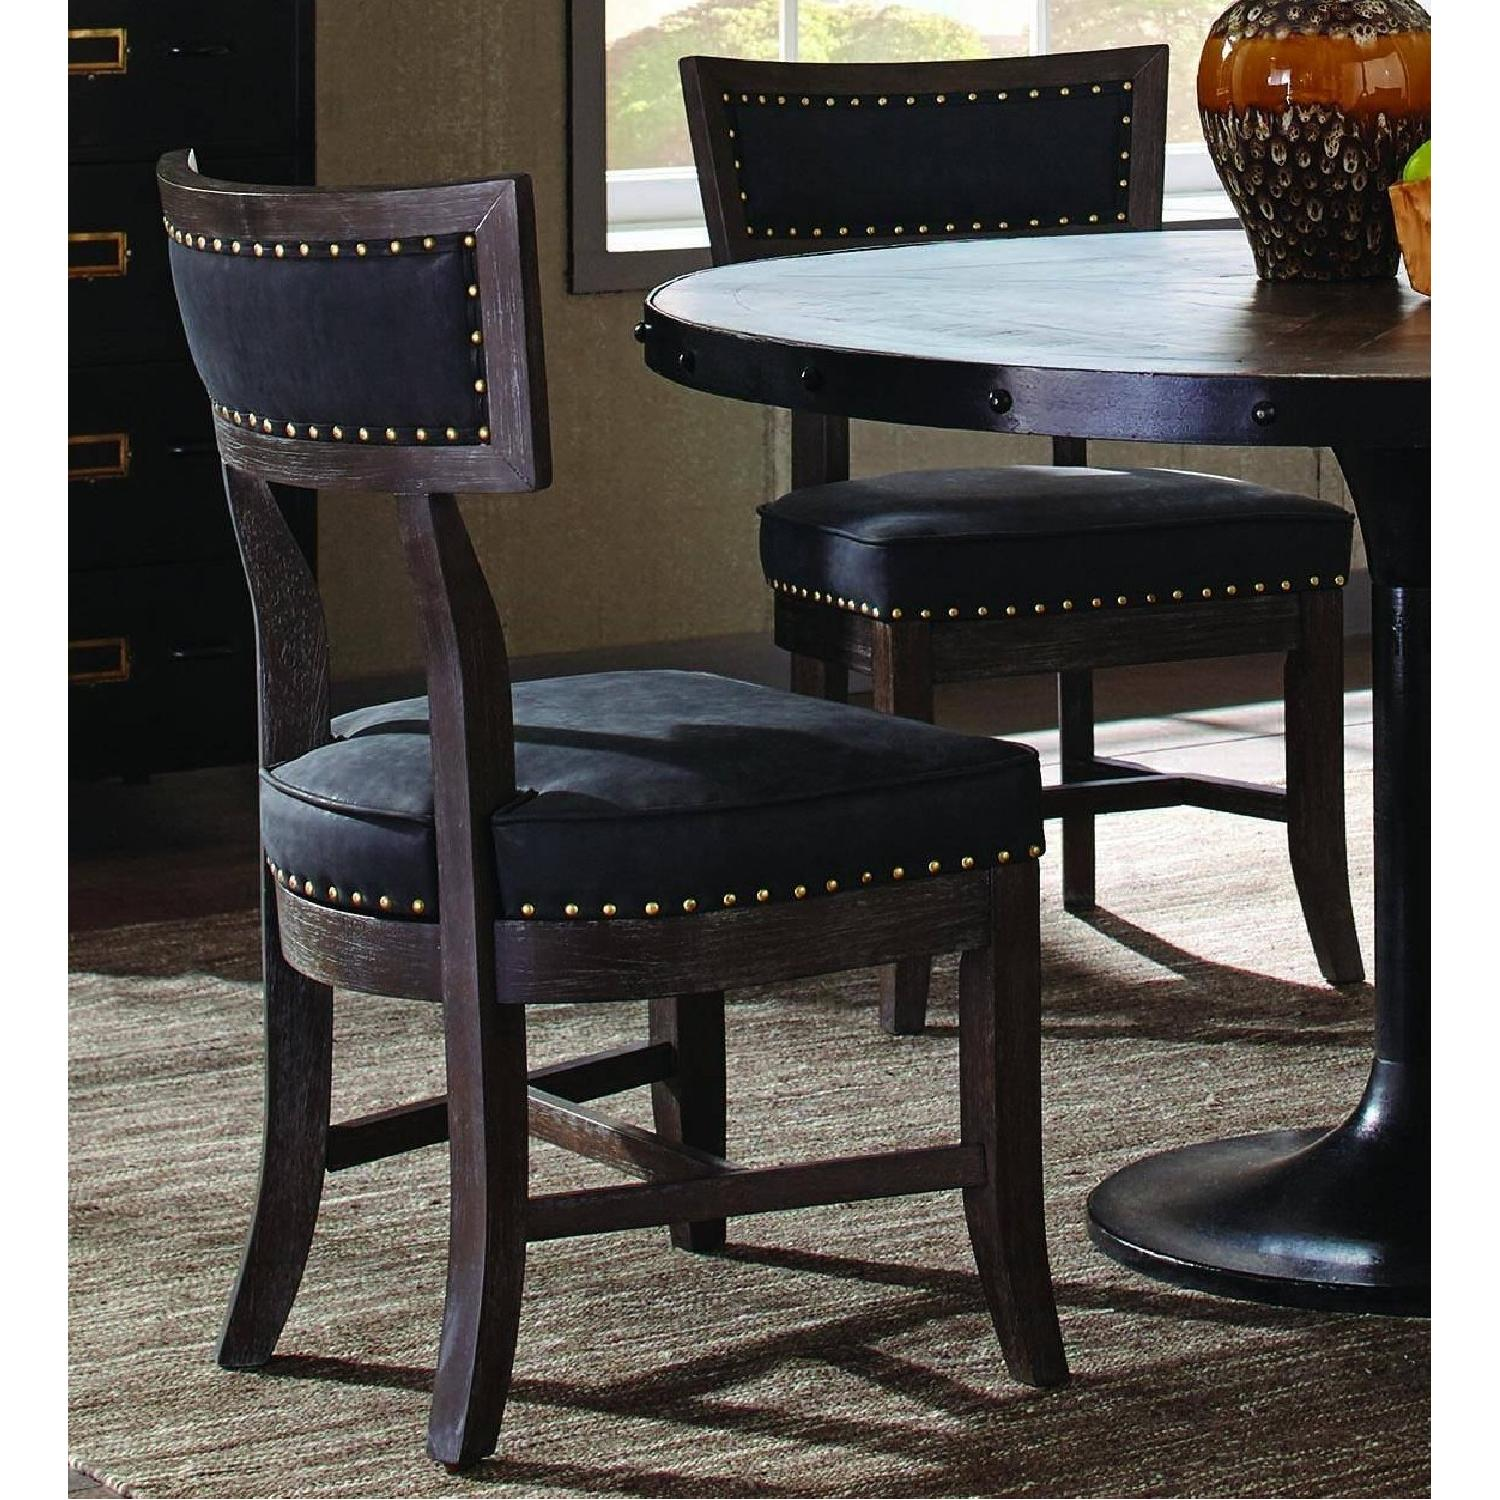 Rustic Dining Chair w/ Black Cushion & Nailhead Accent - image-1